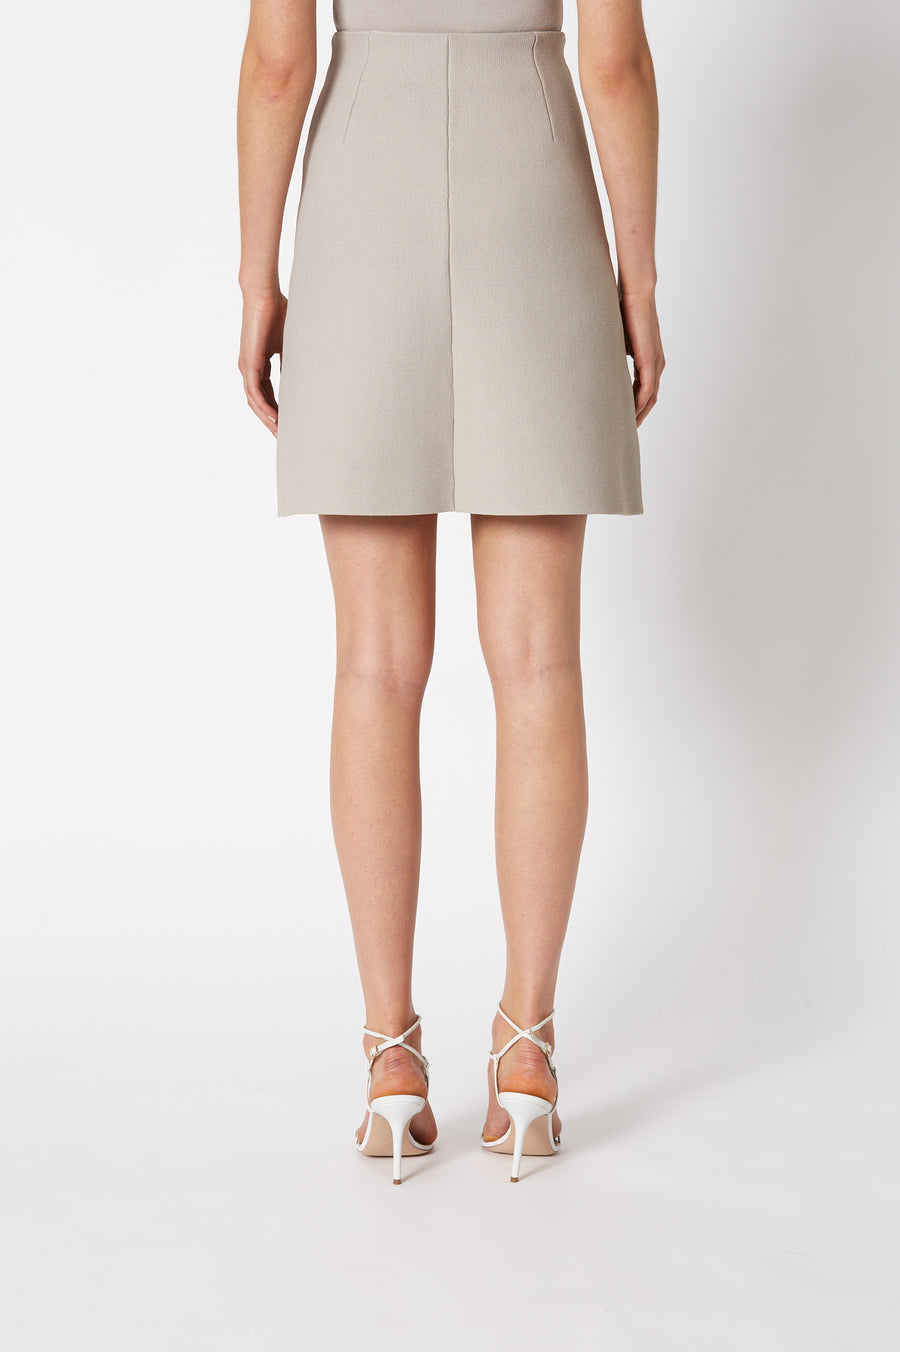 CREPE KNIT SHORT A-LINE SKIRT OYSTER